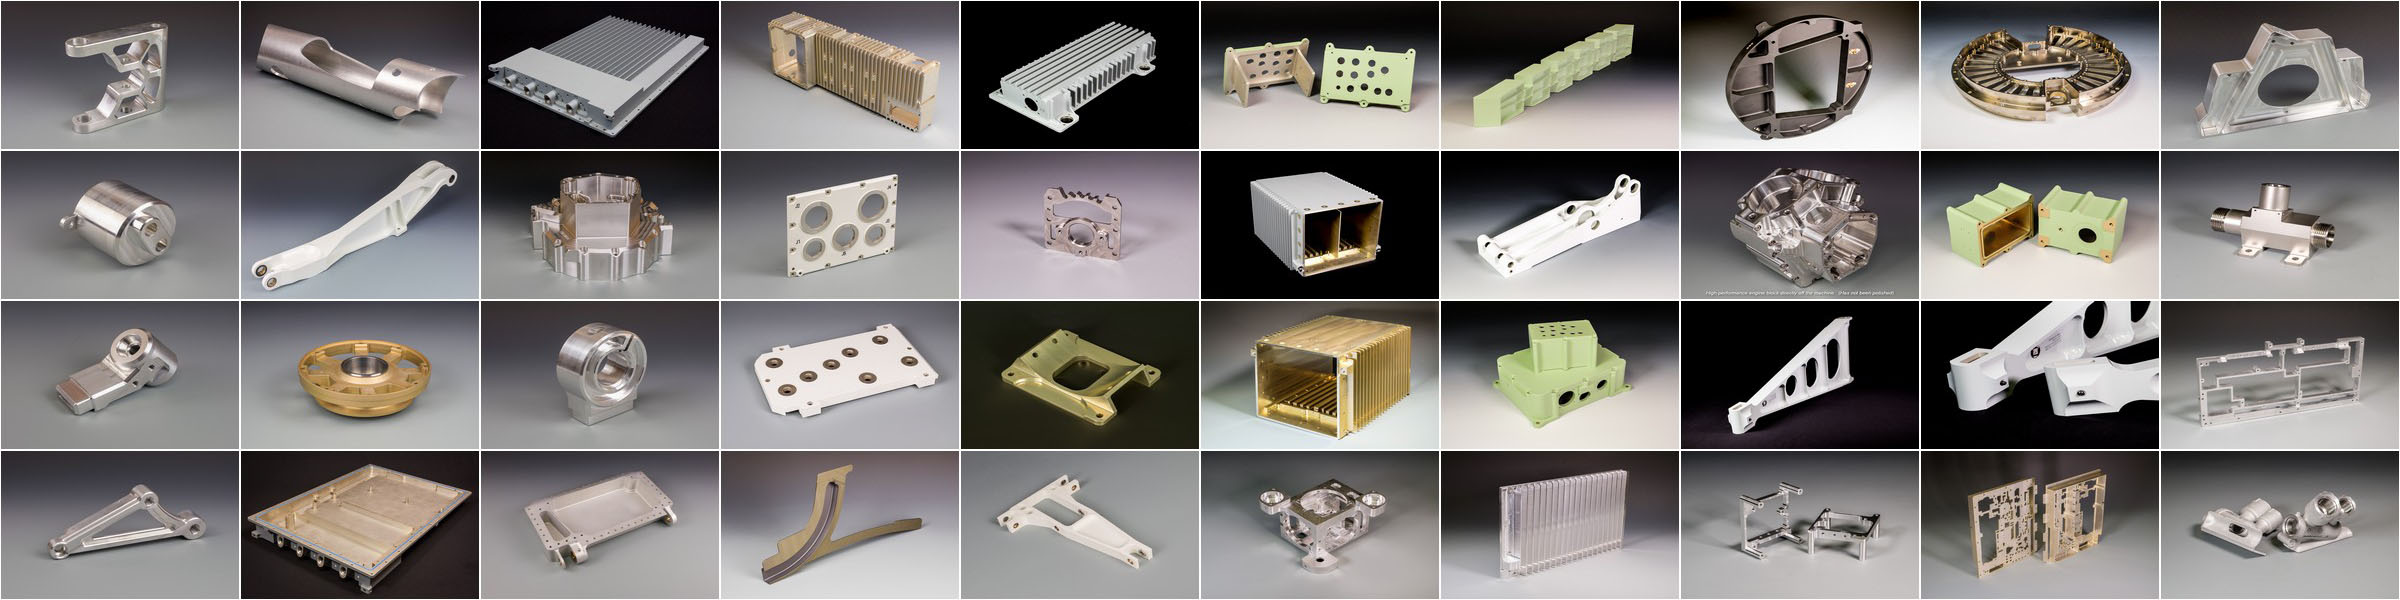 CNC Industries precision machining